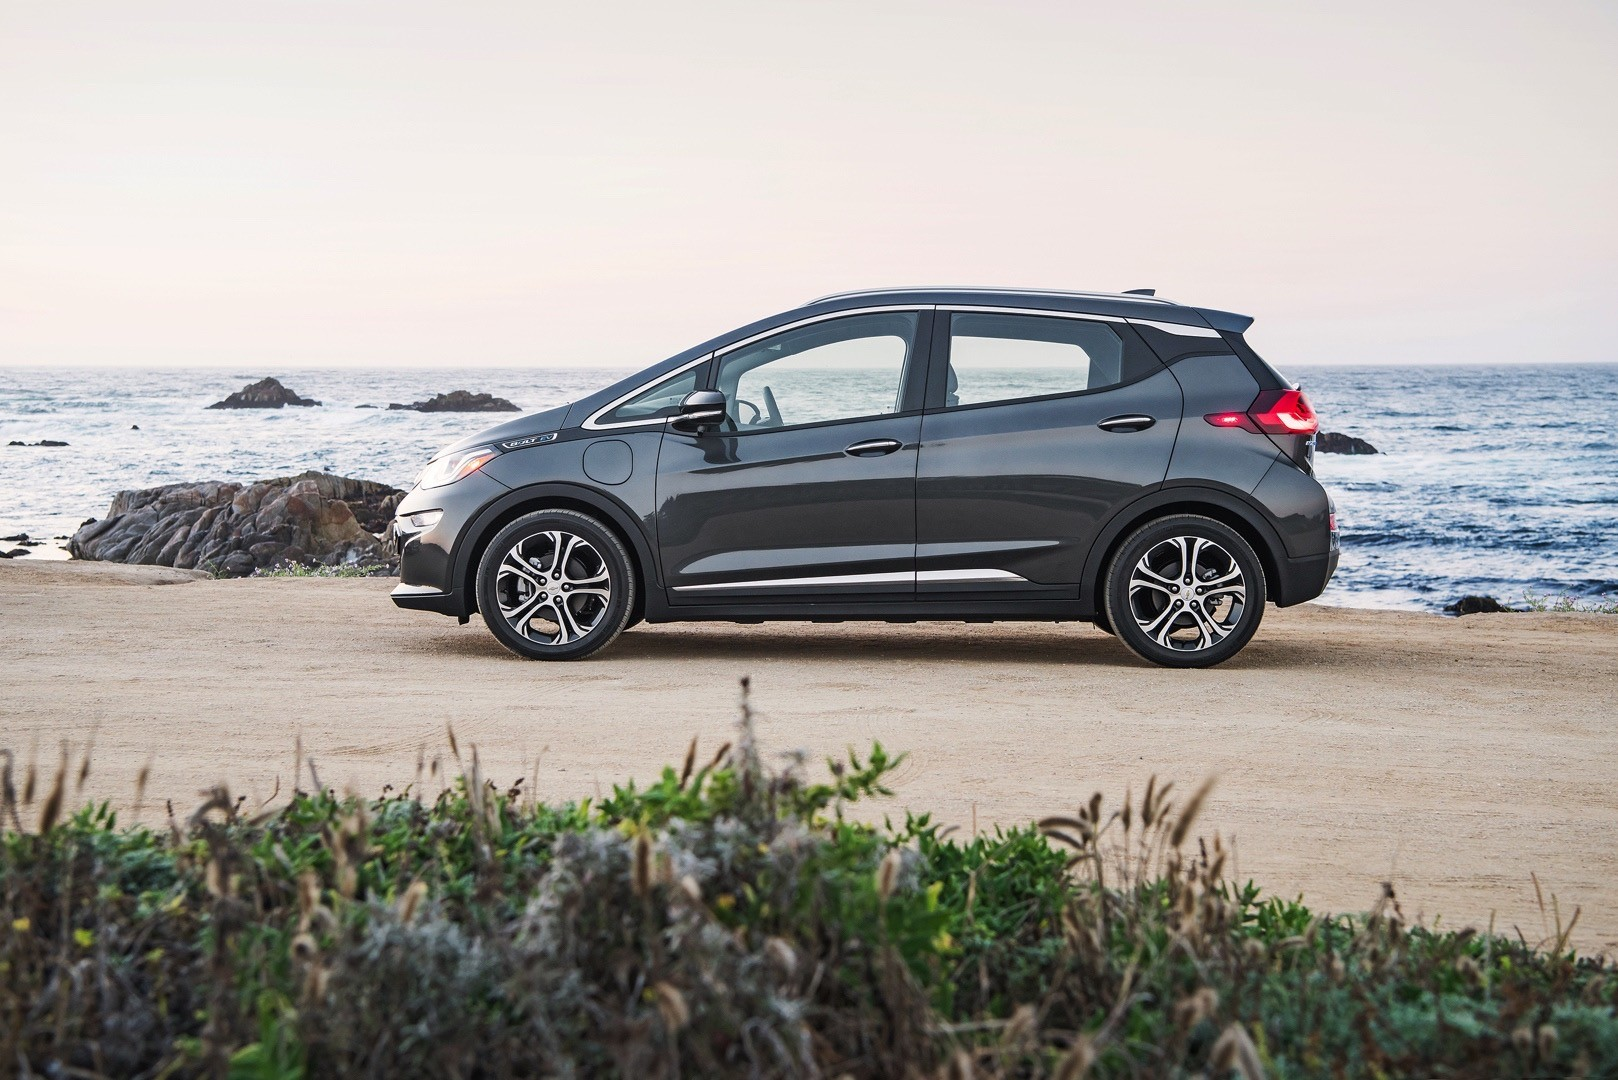 2017 Chevrolet Bolt Order Guide Confirms Lack of Adaptive ...